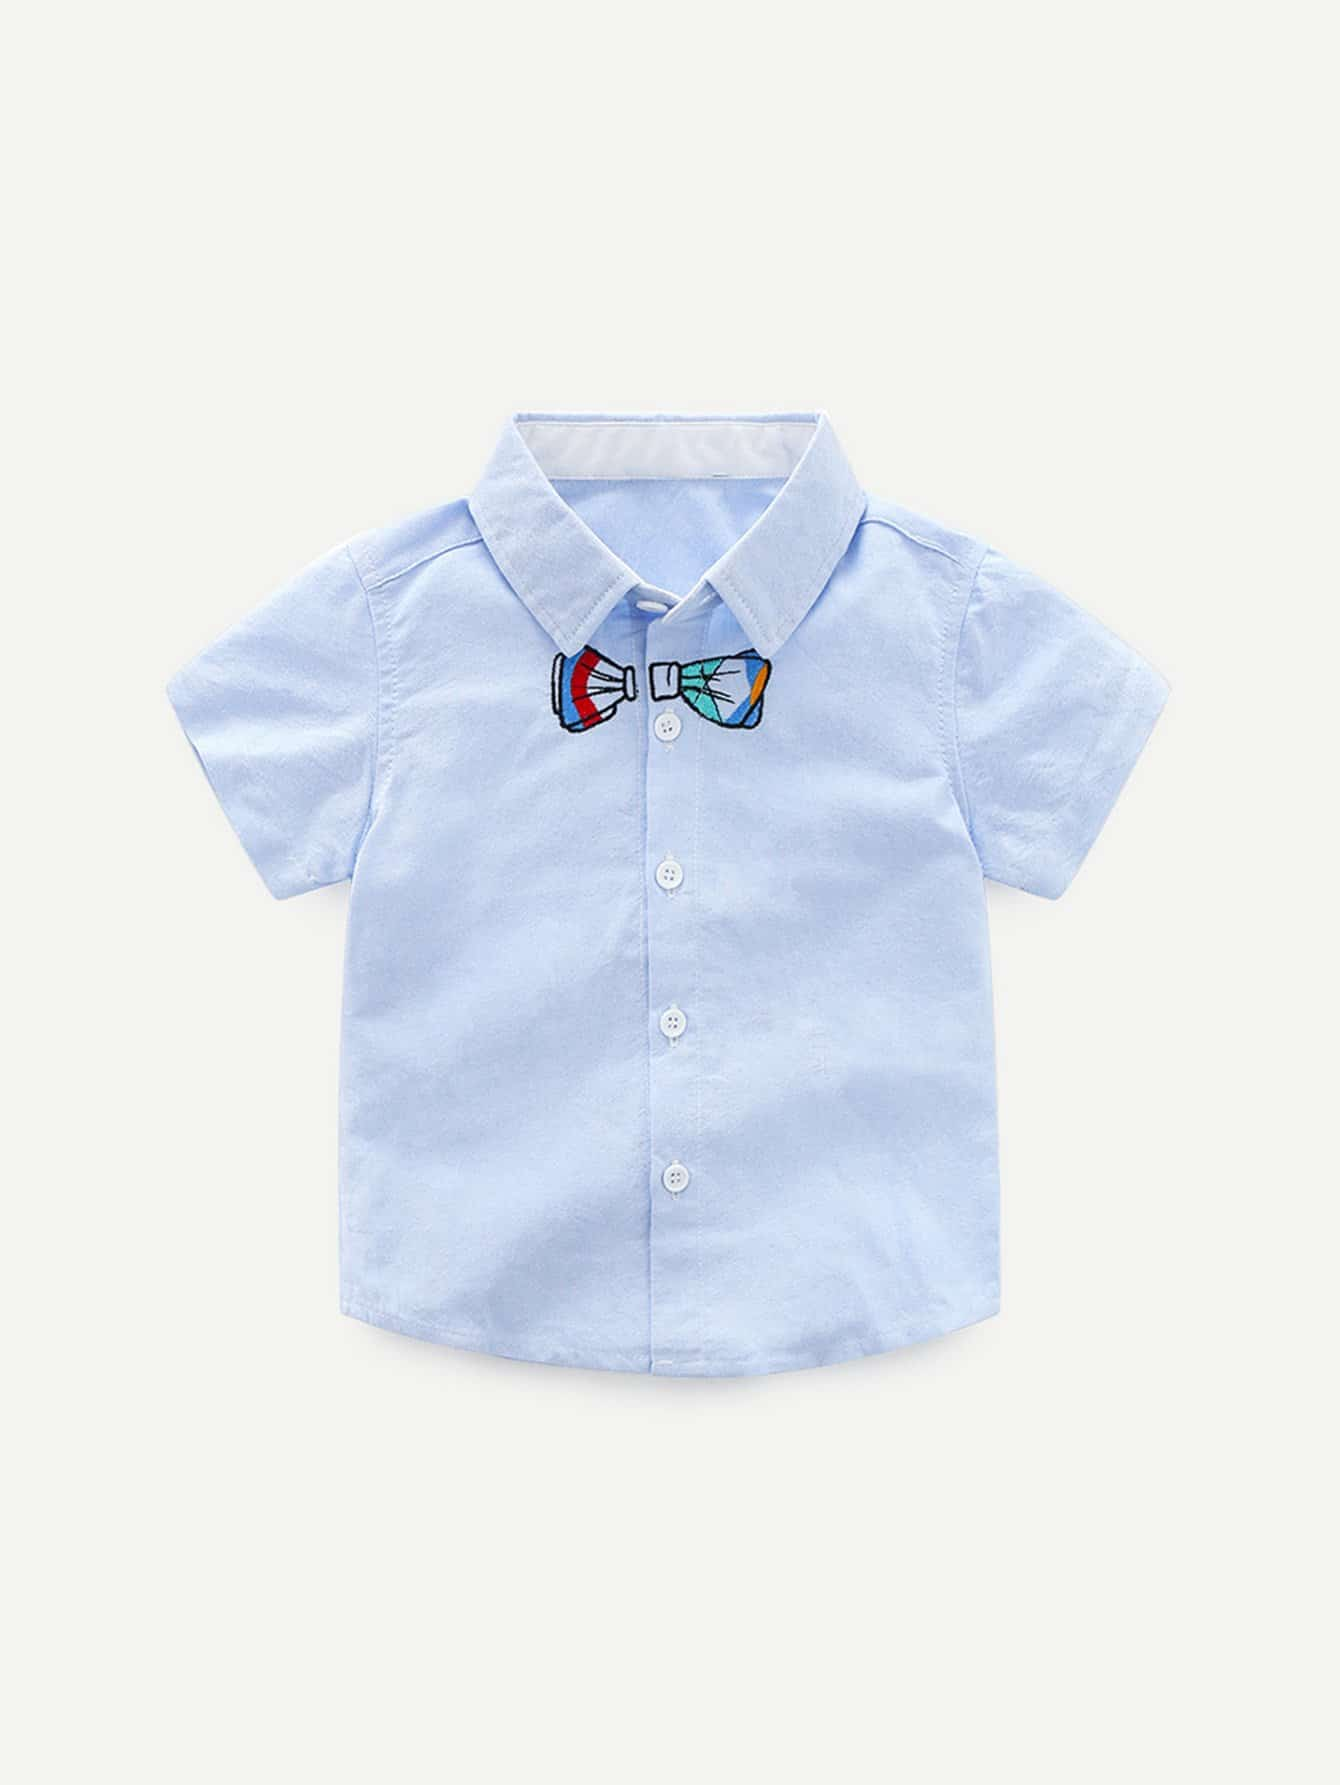 Boys Knot Embroidery Shirt embroidery applique knot back fitted